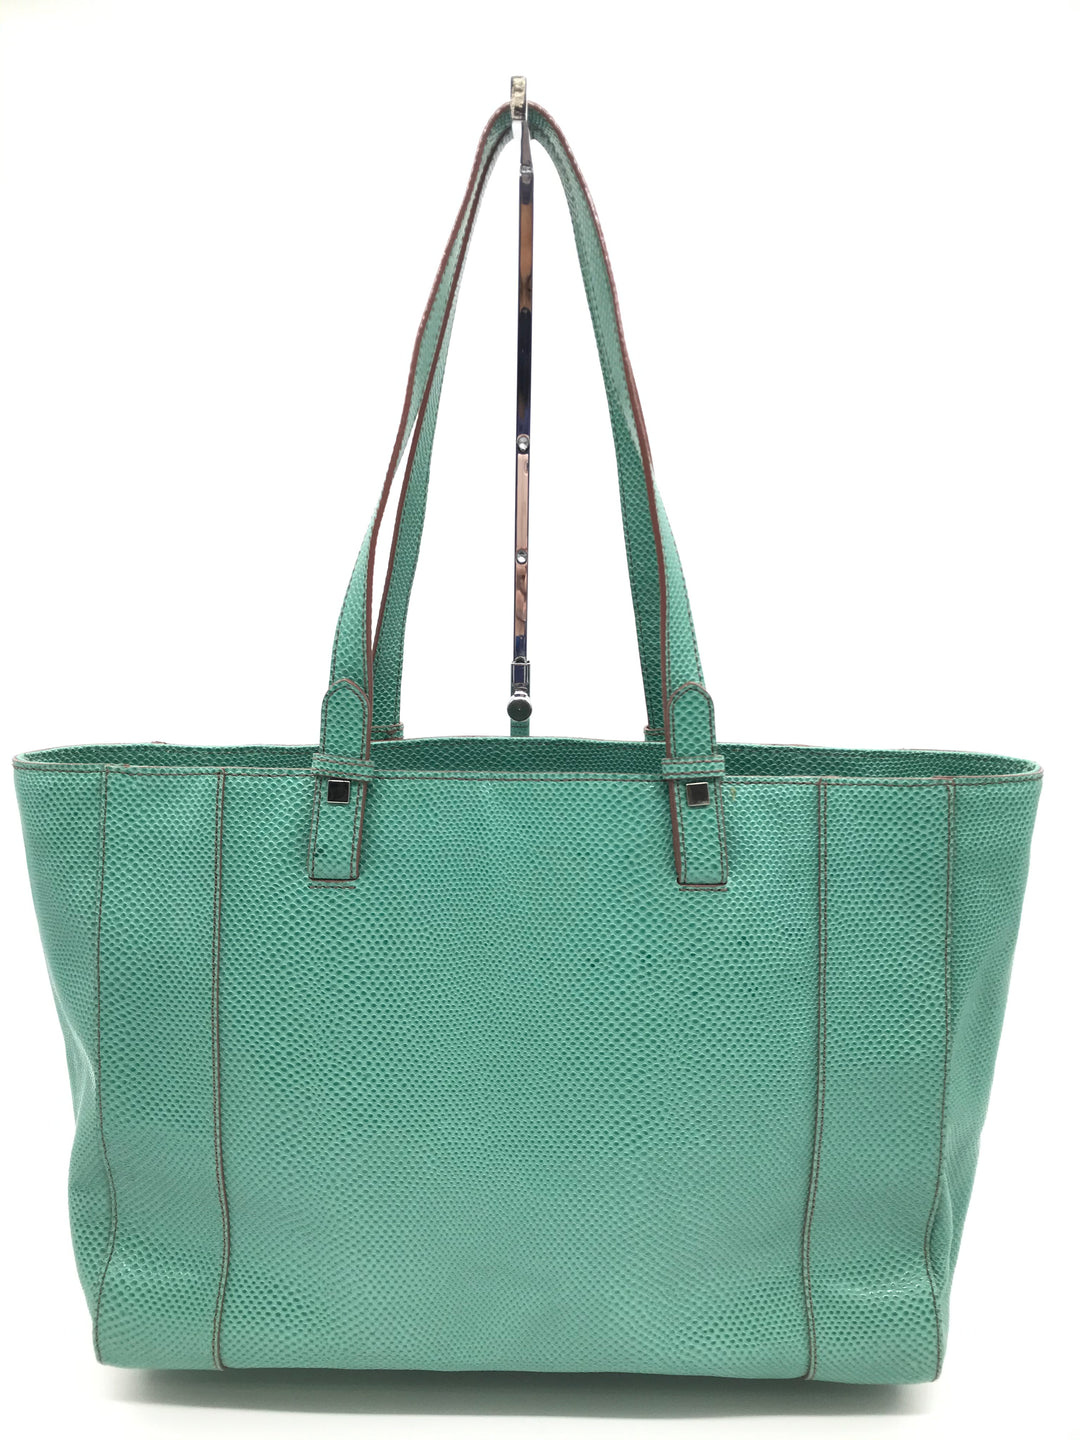 "Primary Photo - BRAND: BARR+BARR<BR>STYLE: HANDBAG <BR>COLOR: MINT <BR>SIZE: LARGE 10""H X 17.5""L X 5""W <BR>SKU: 262-26275-70332<BR>SOME MARKS ON THE EXTERIOR -AS IS"